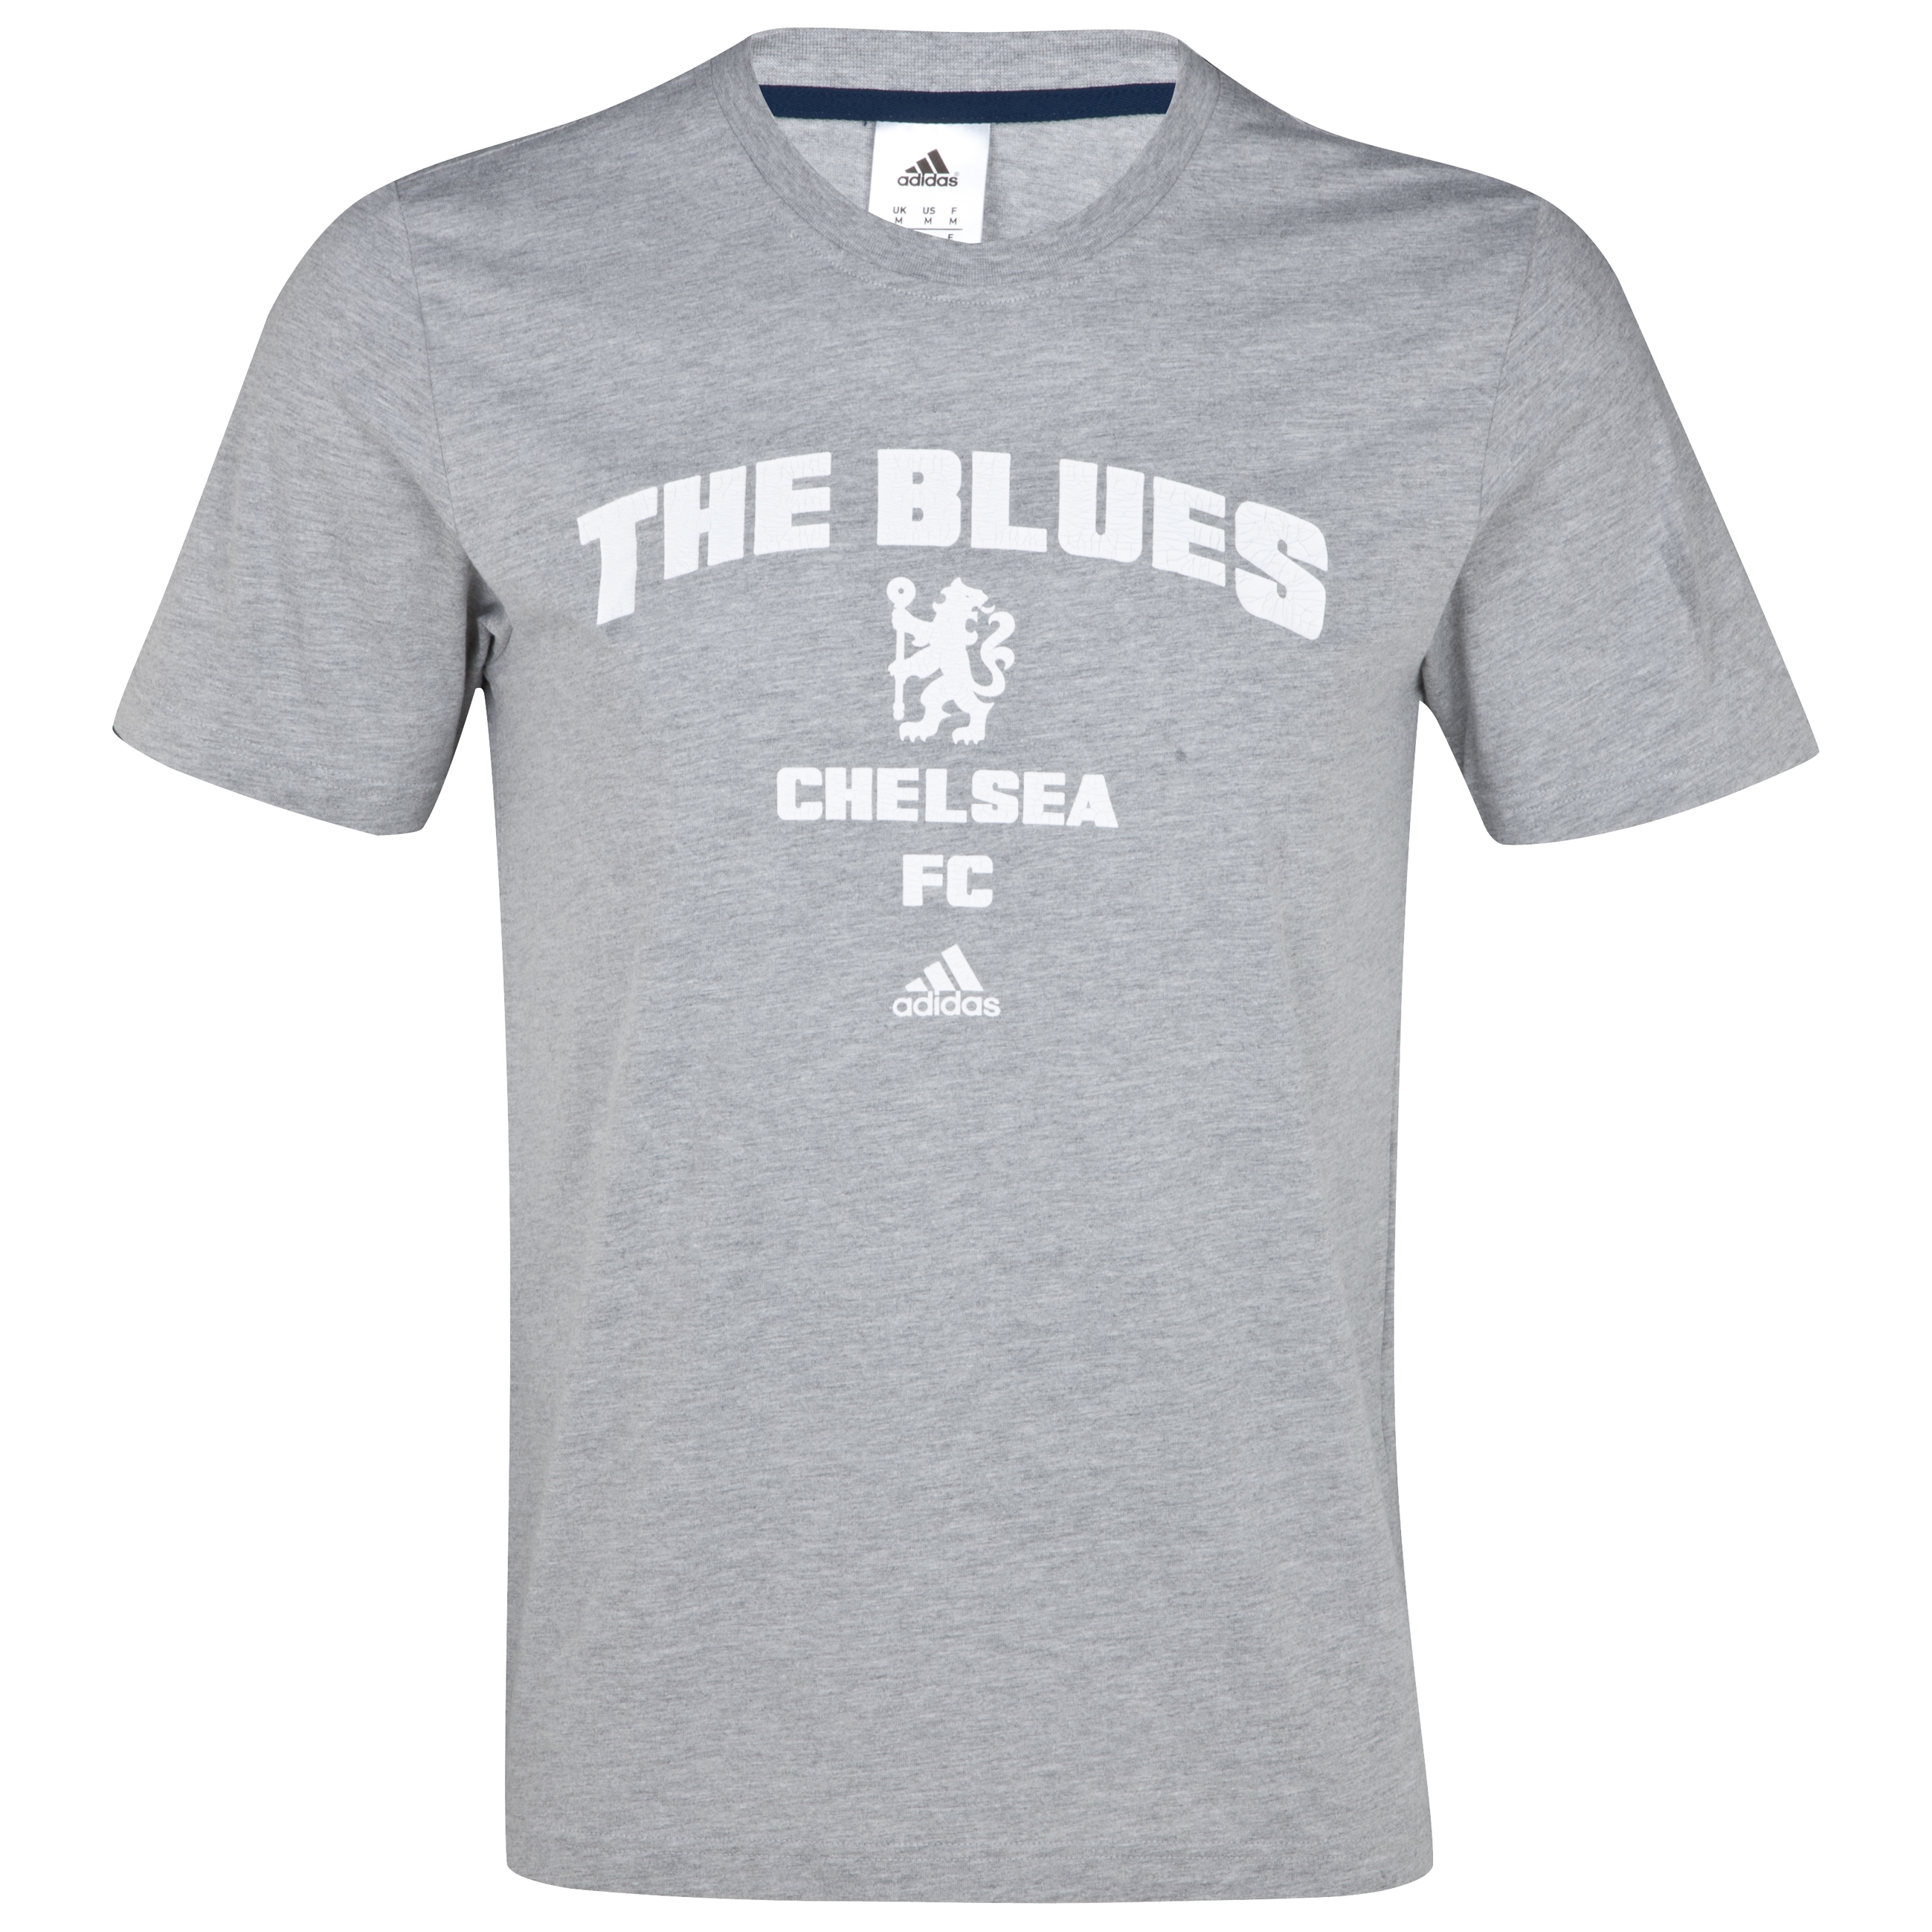 Chelsea Graphic T-Shirt - Medium Grey Heather/White